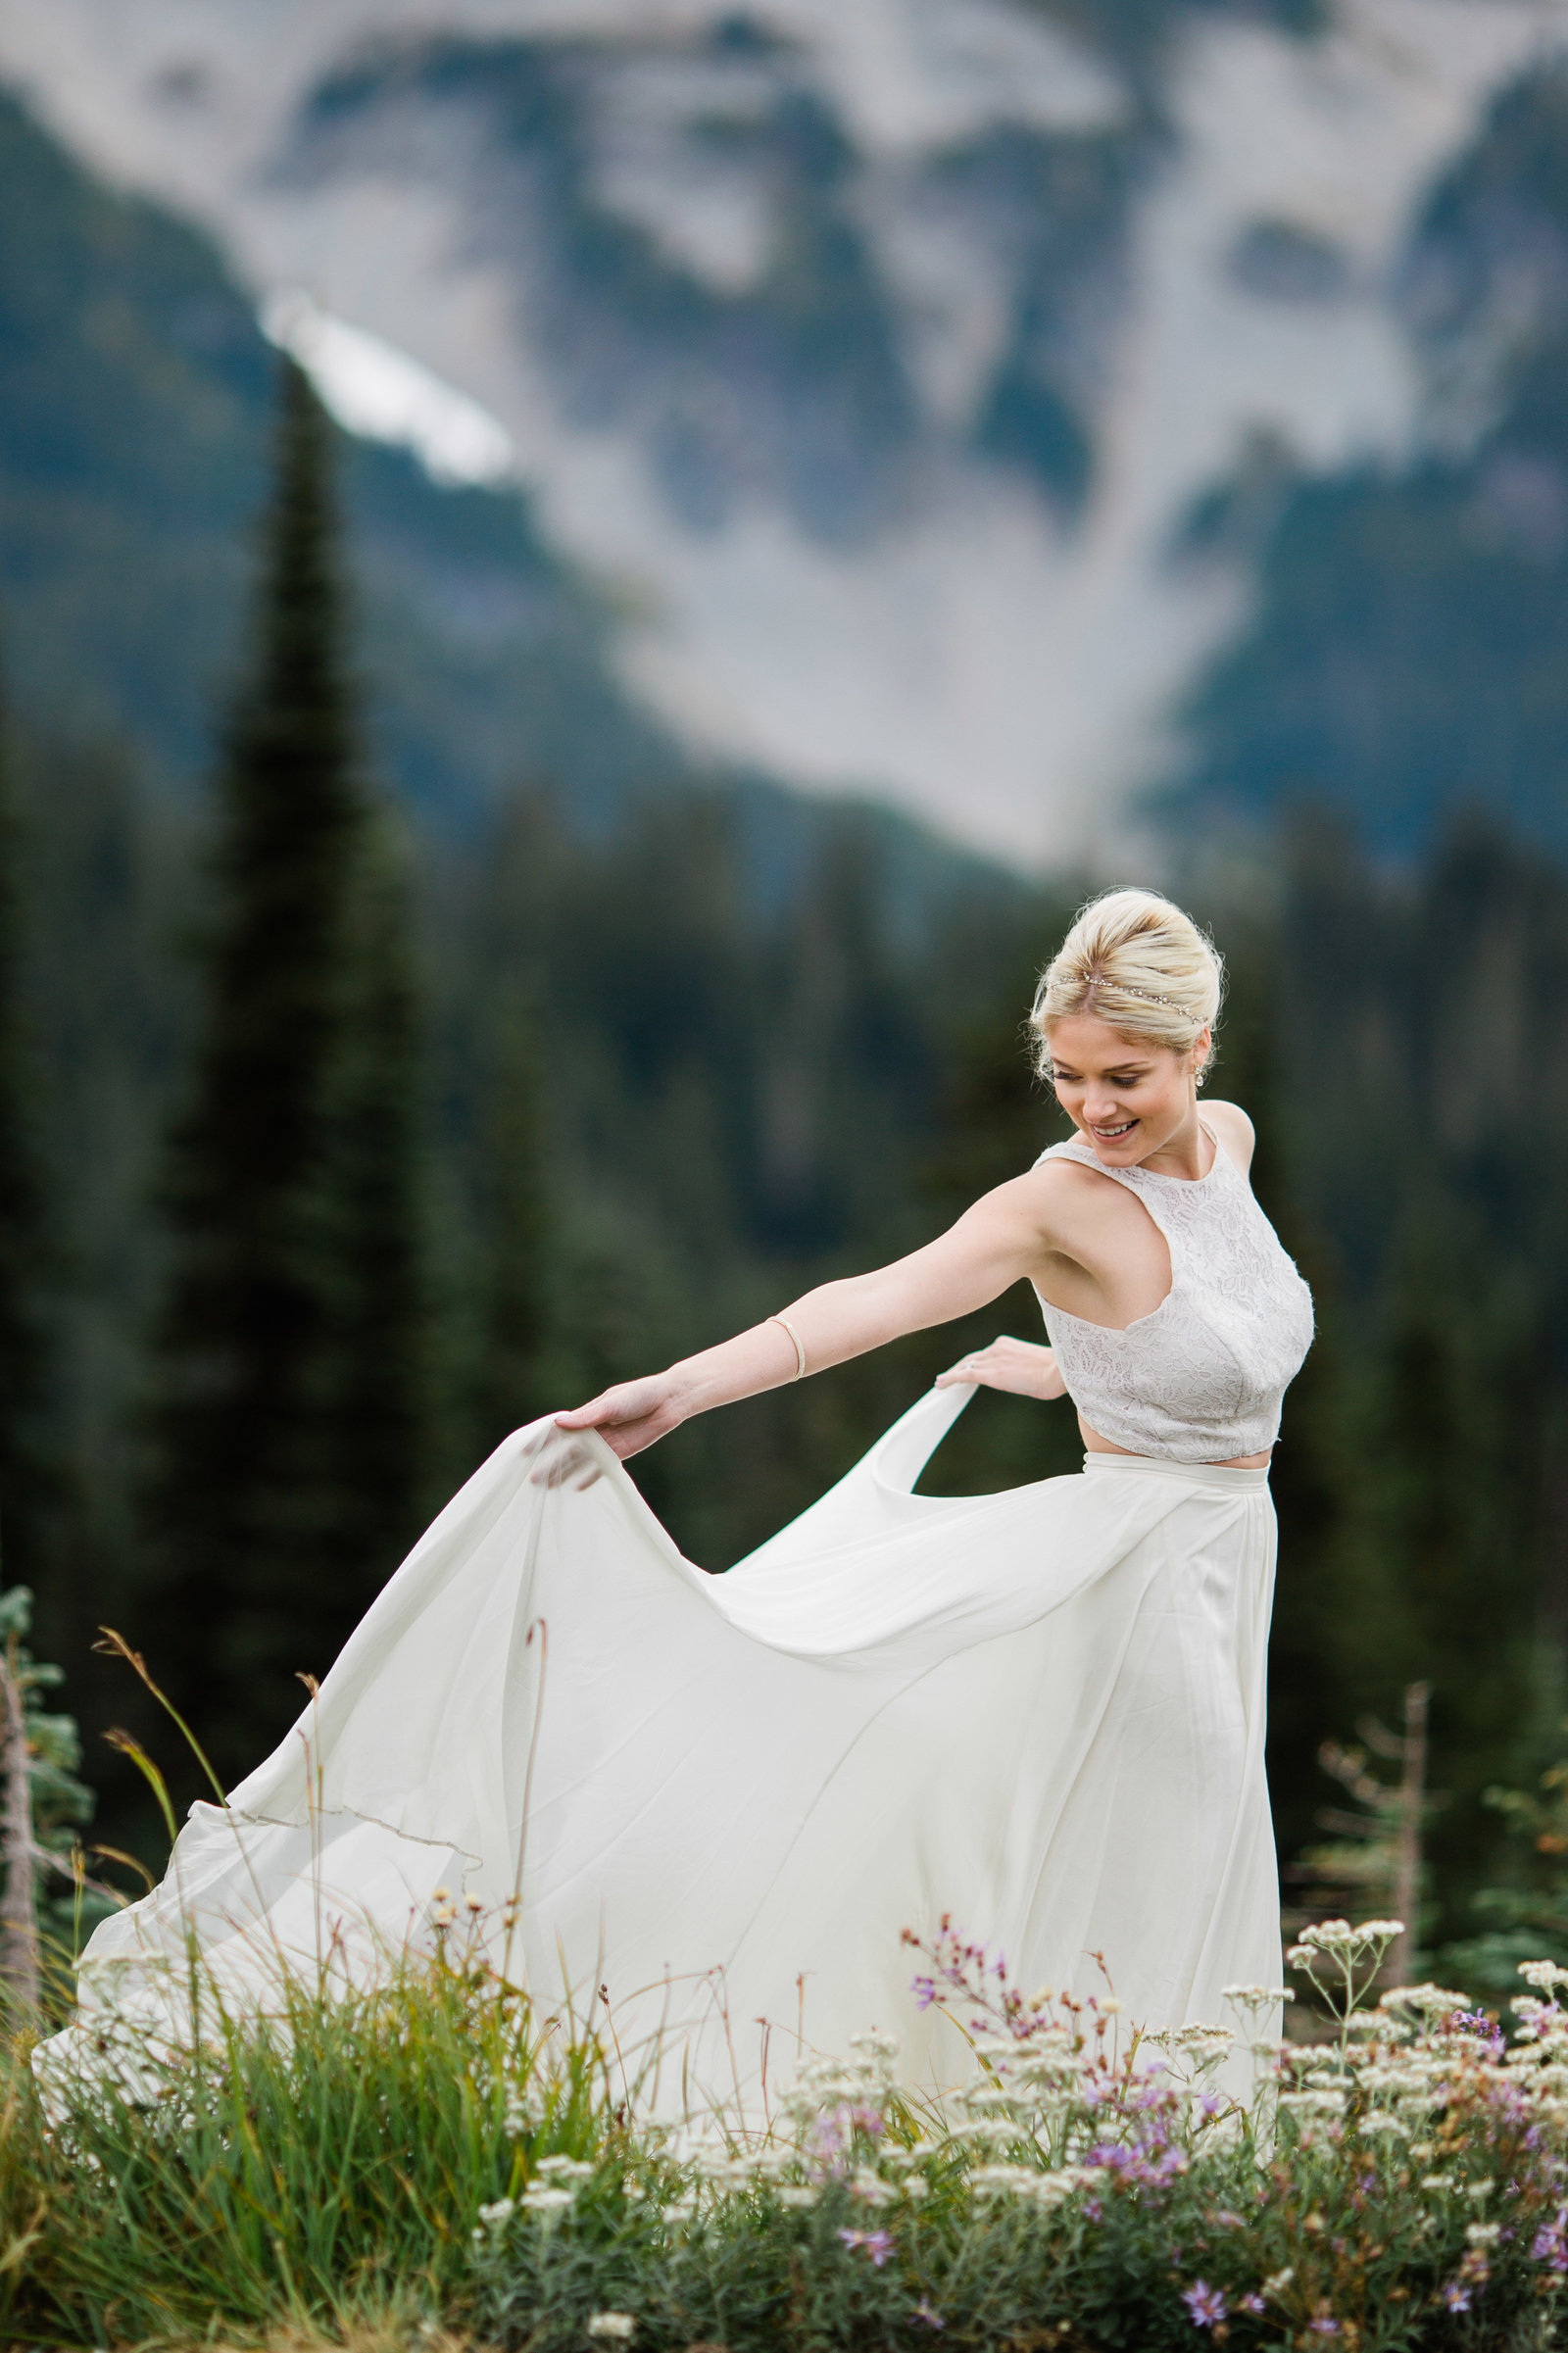 mount-rainier-national-park-elopement-cameron-zegers-photographer-seattle-132